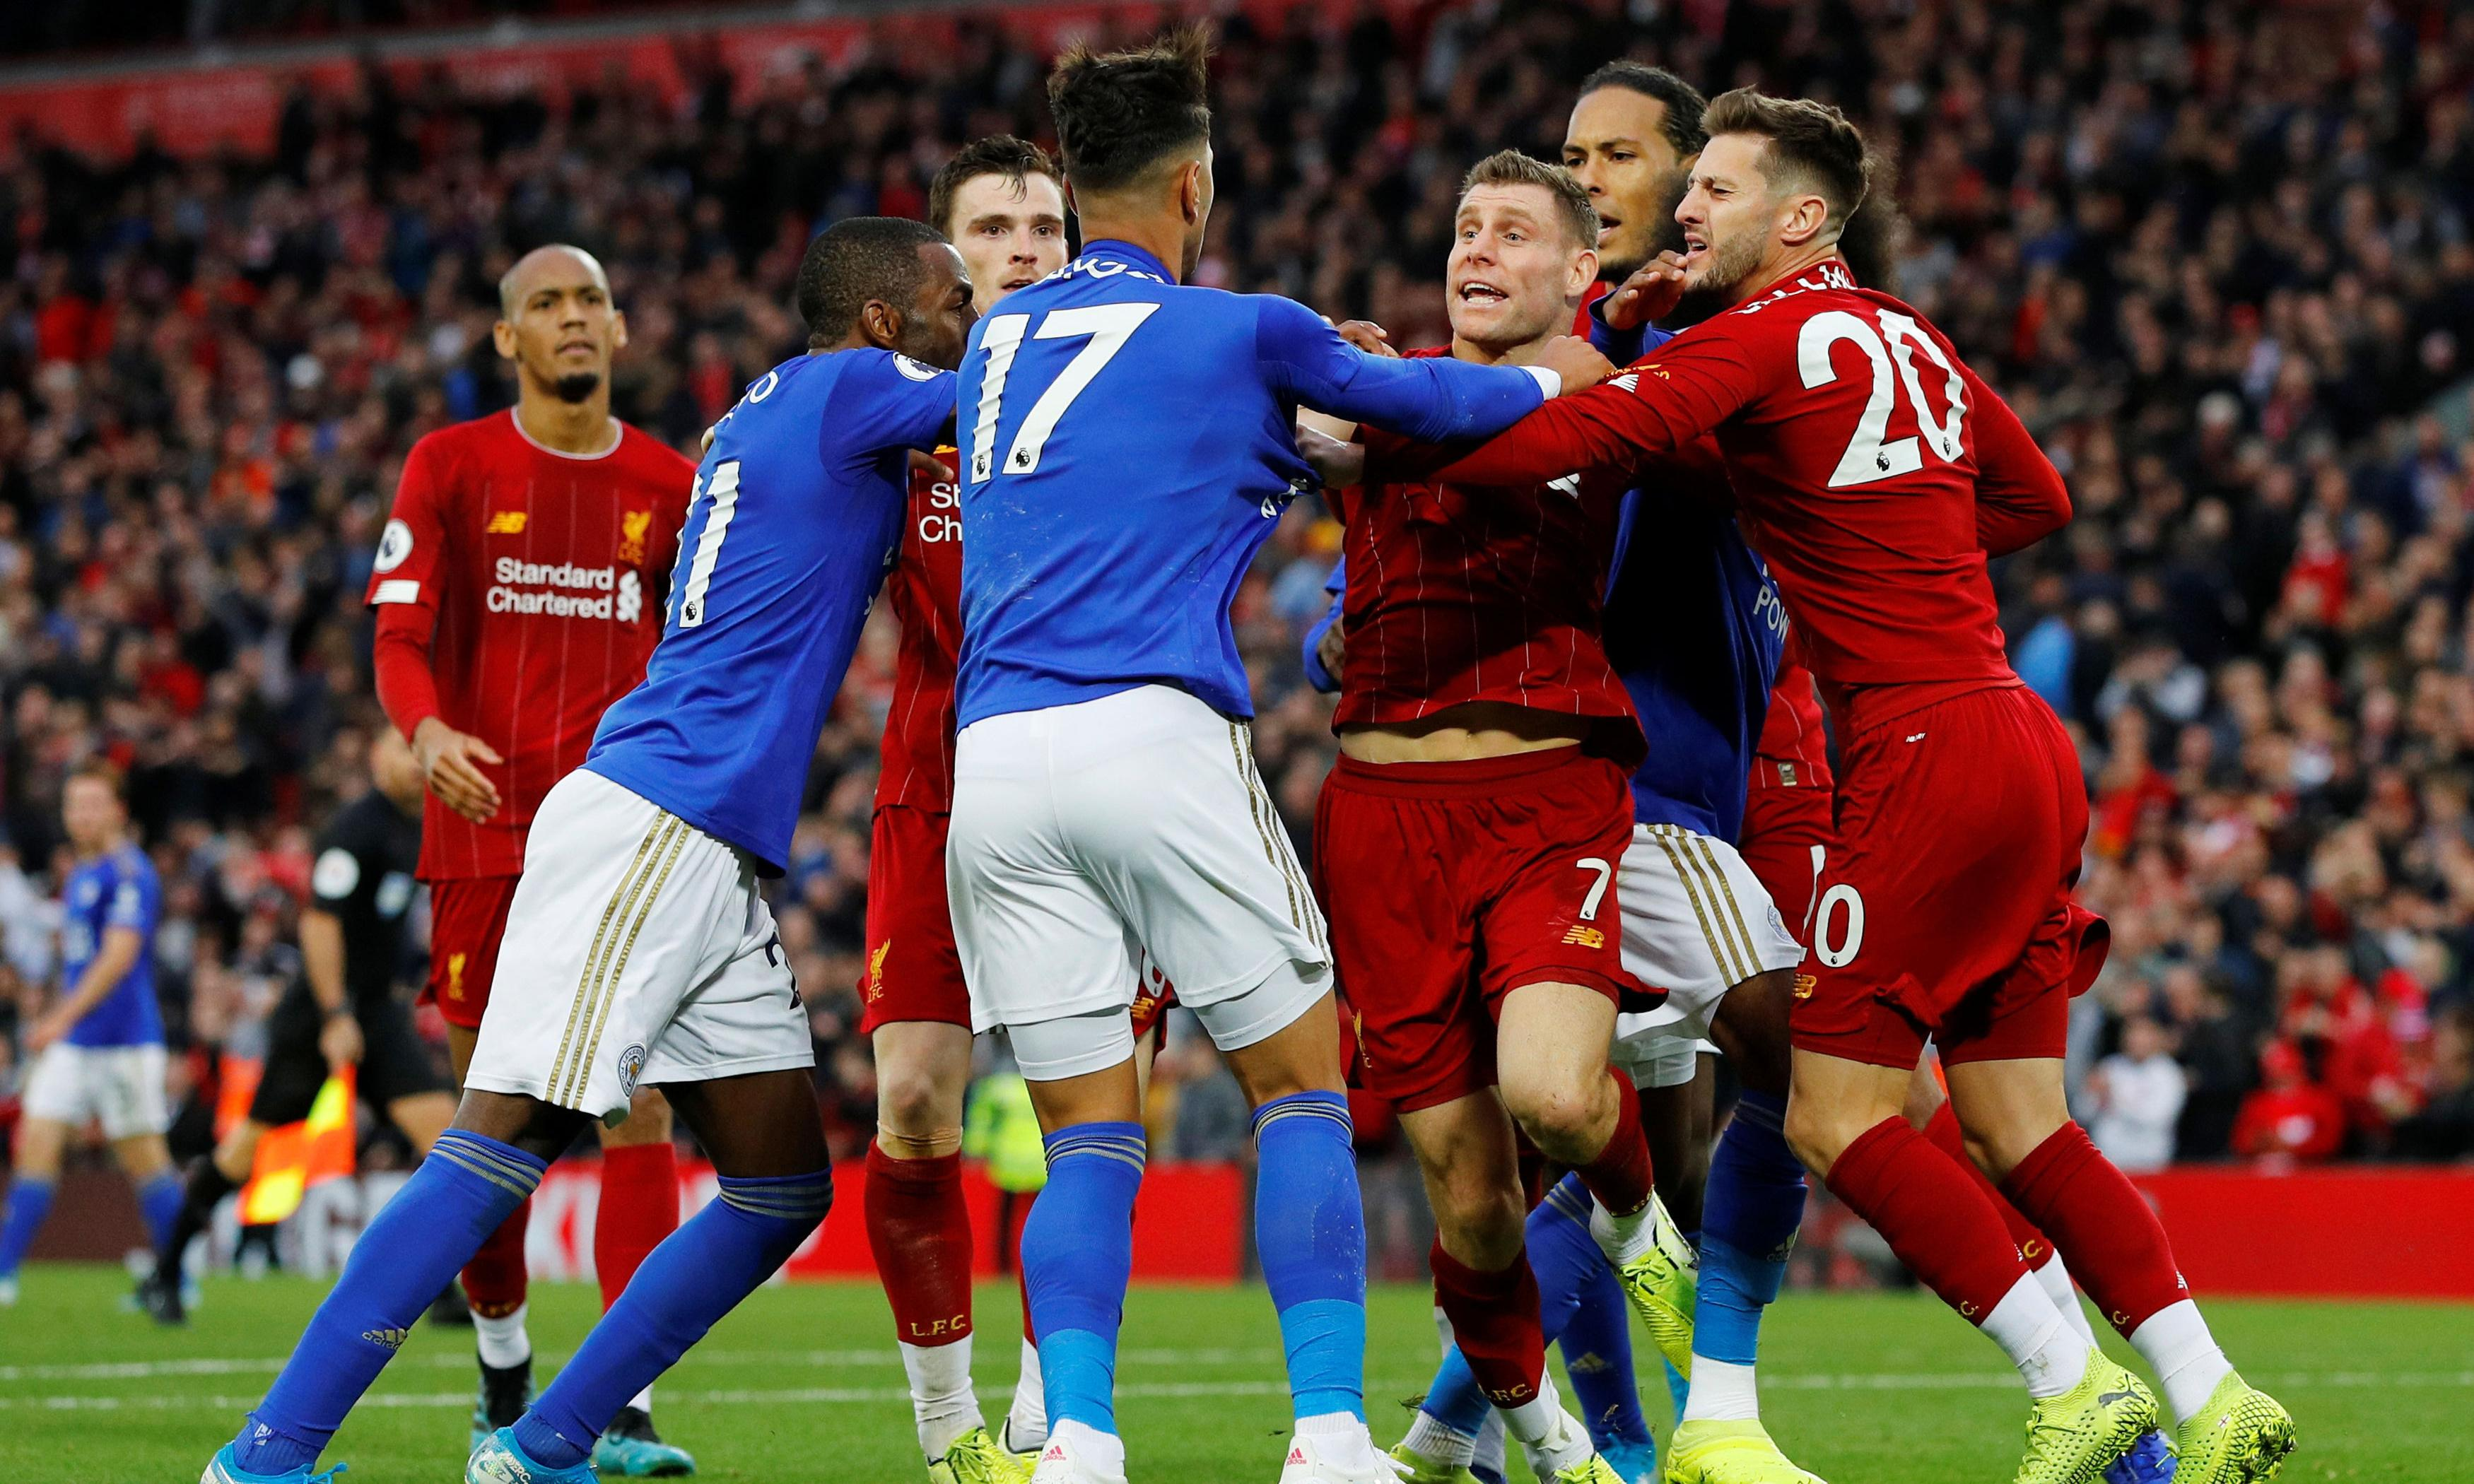 James Milner downs Leicester at the last to keep up Liverpool's perfect start